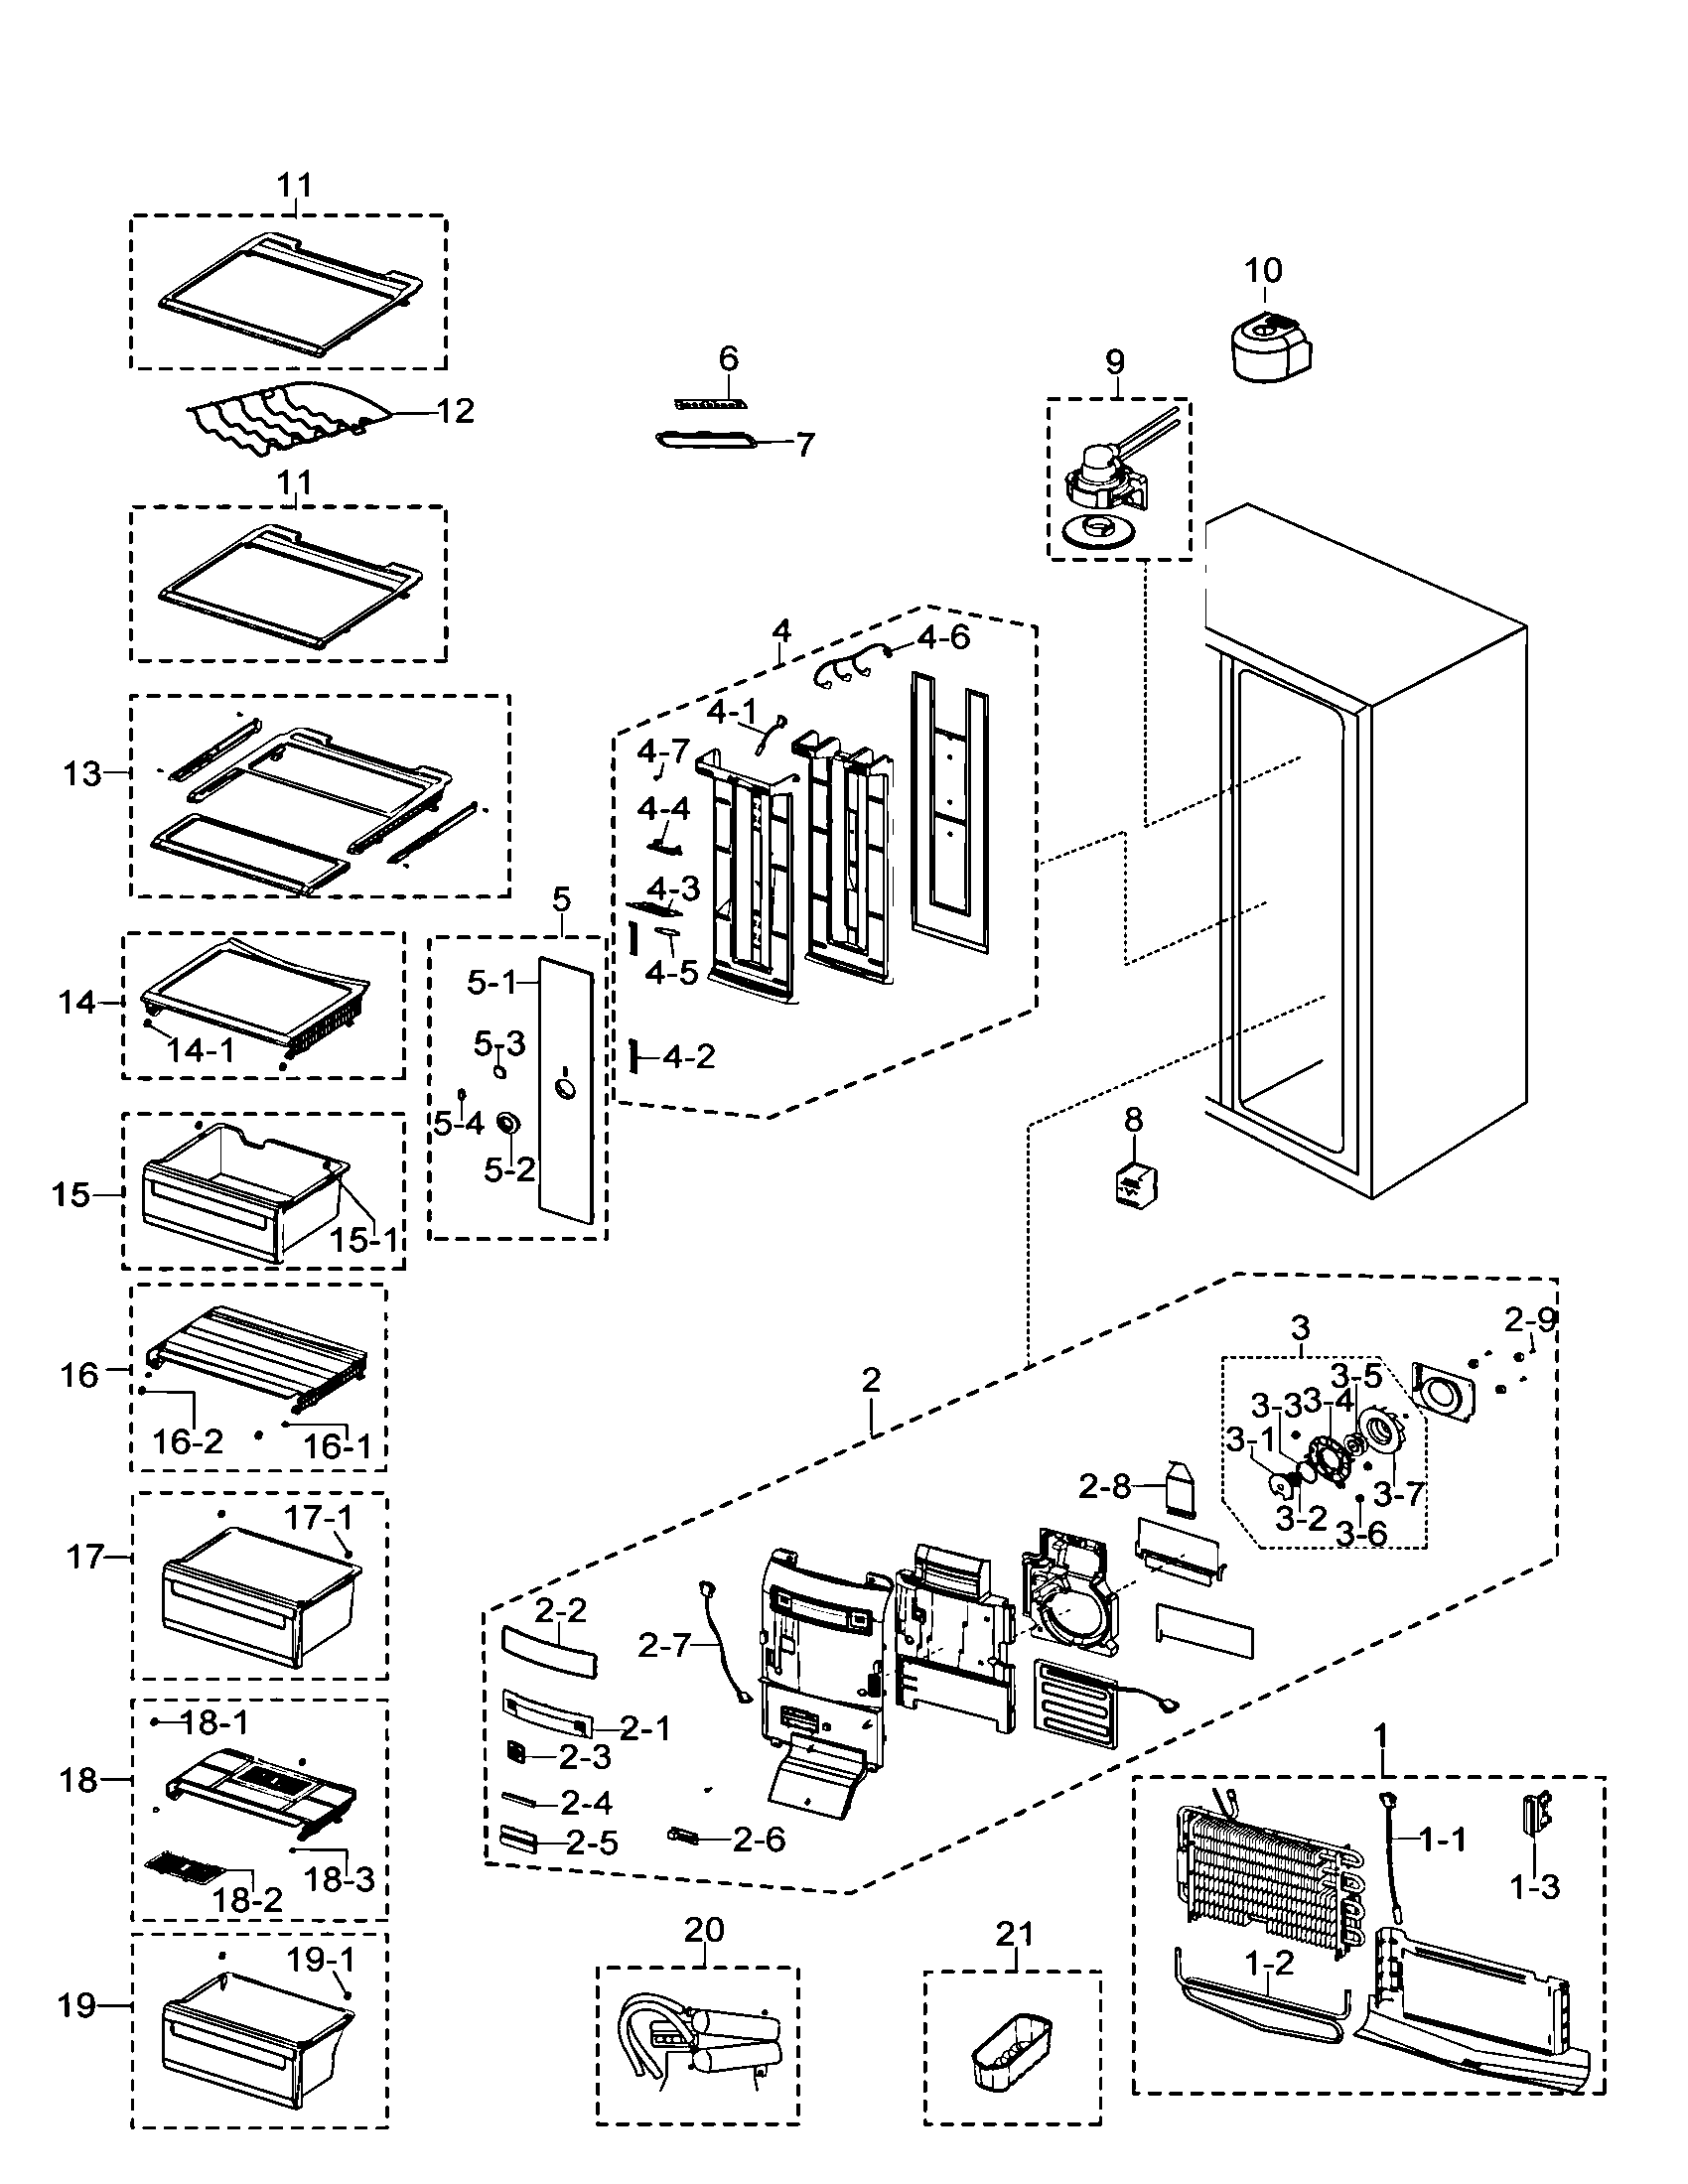 REFRIGERATOR Diagram & Parts List for Model